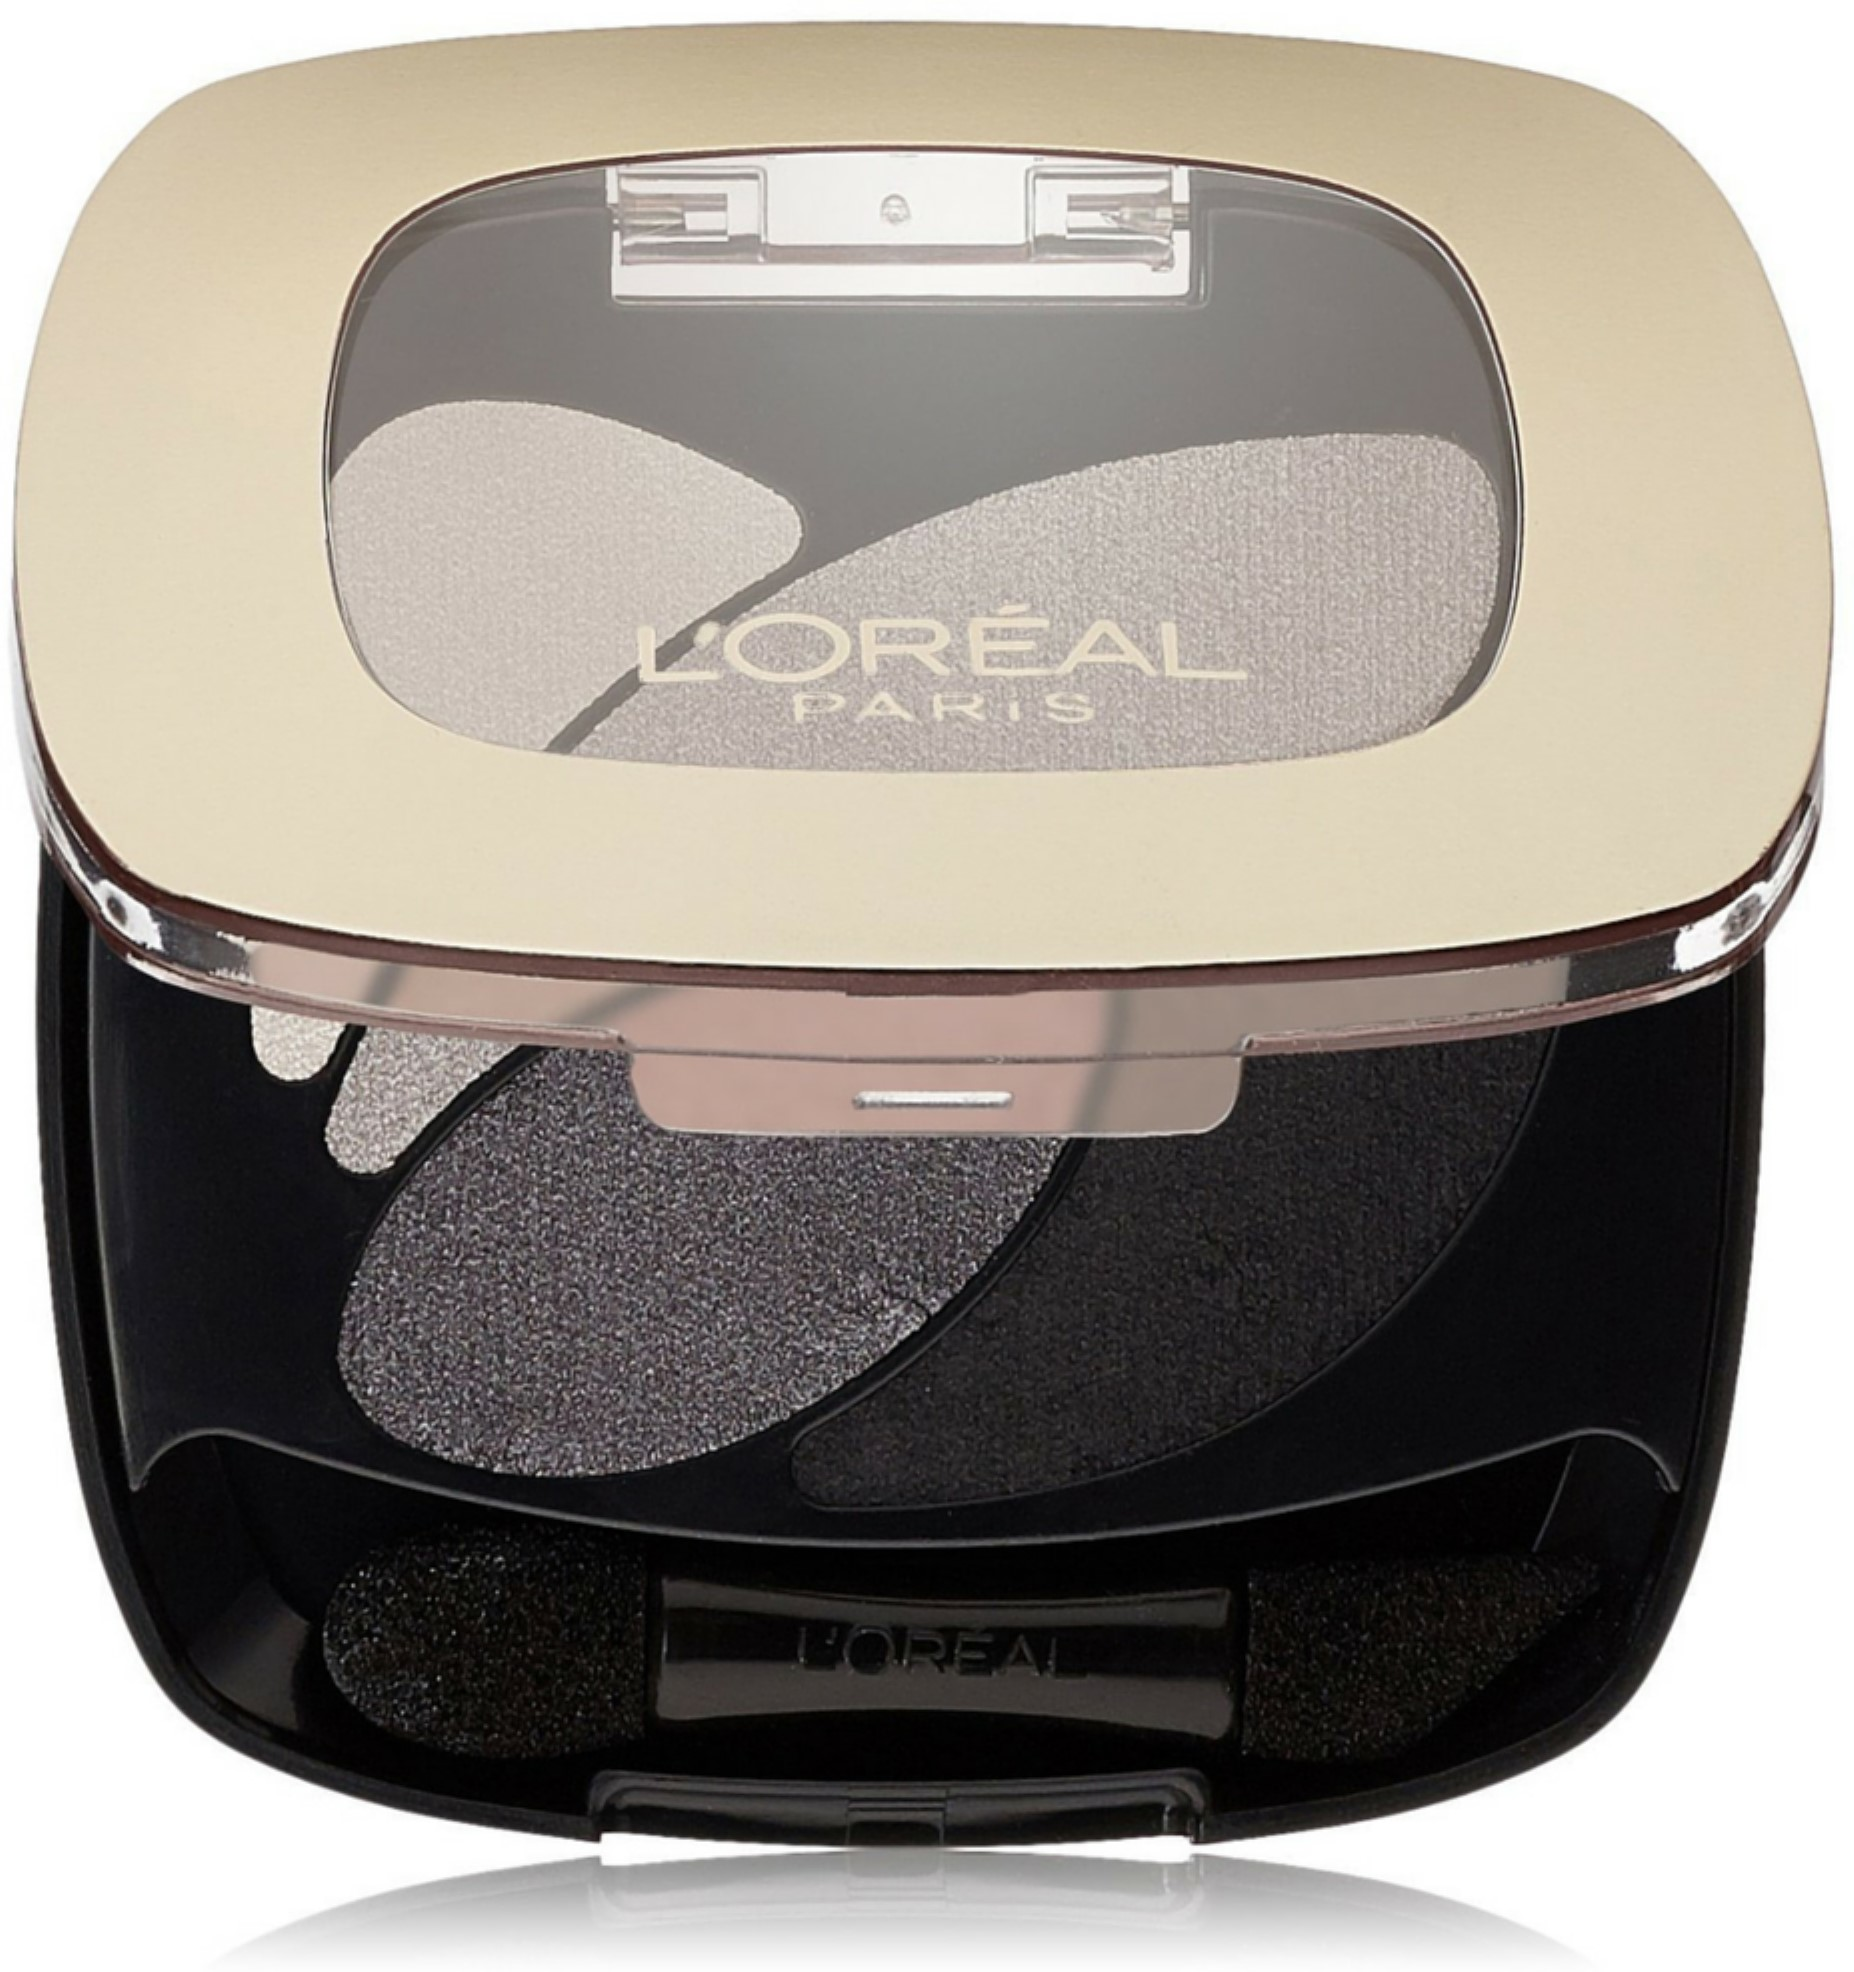 L'Oreal Paris Colour Riche Dual Effects Eyeshadow, Incredible Grey [260] 0.12 oz (Pack of 6)